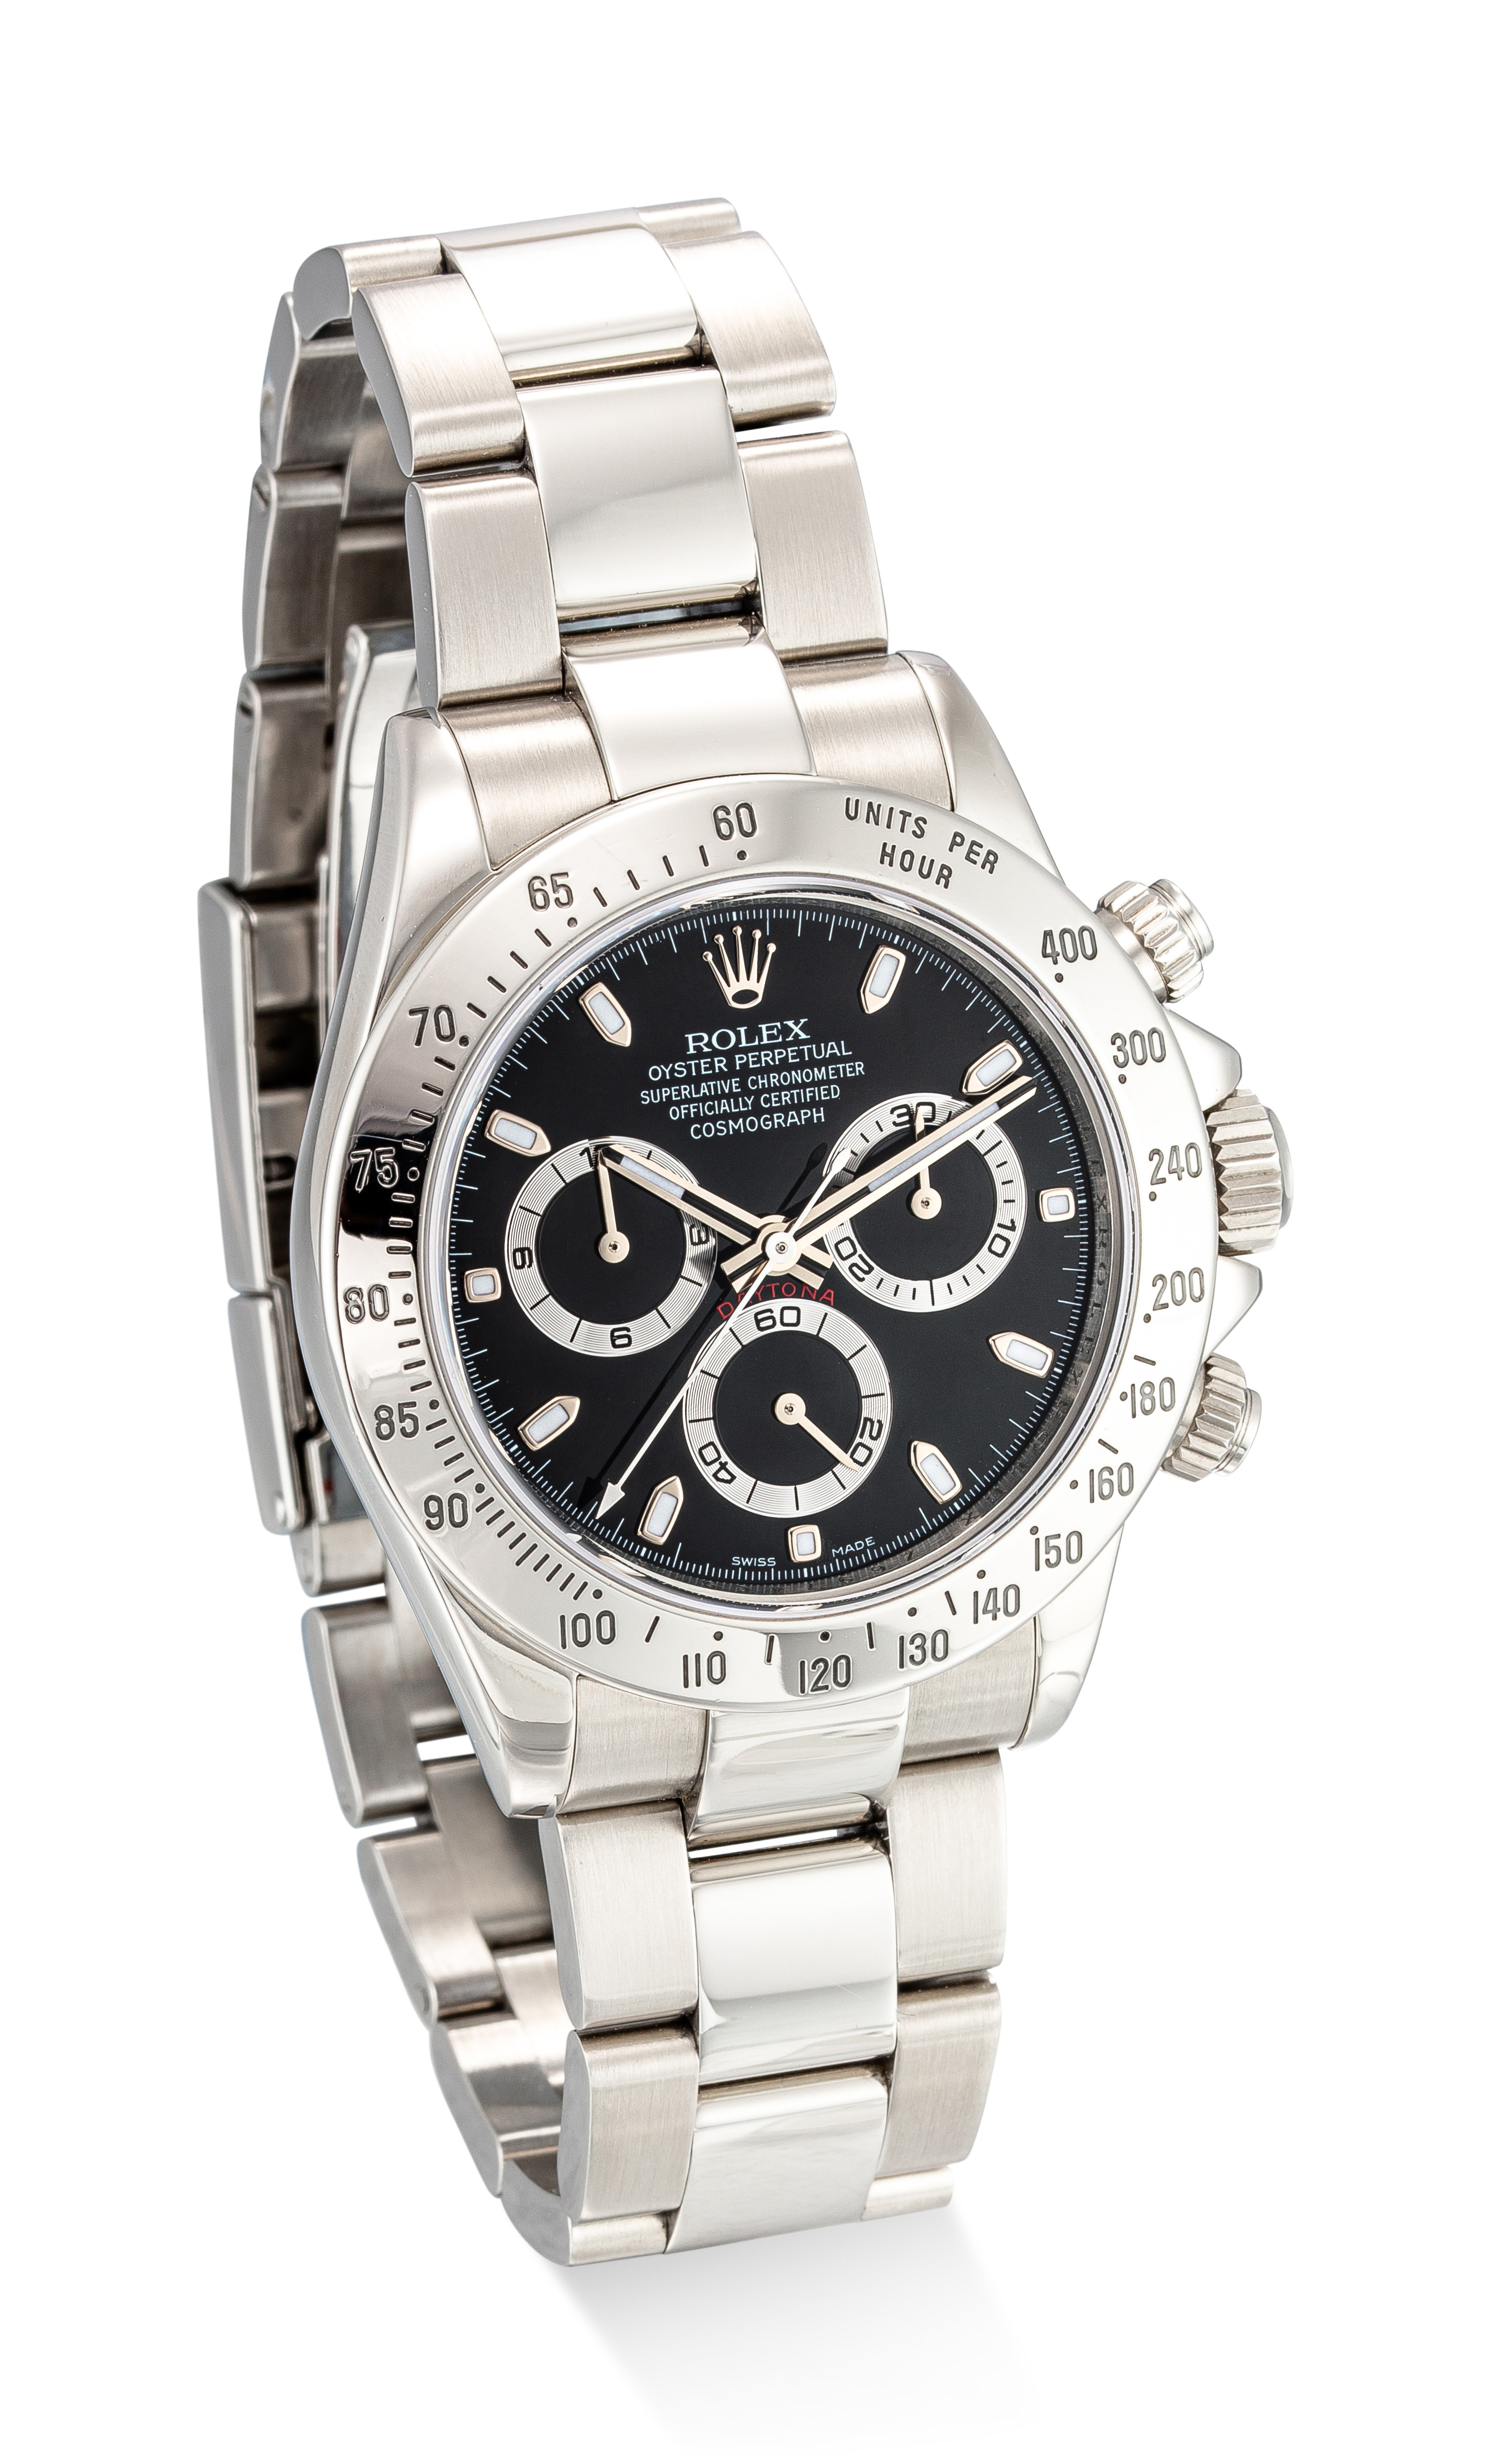 daytona-reference-116520-a-stainless-steel-automatic-chronograph-wristwatch-with-bracelet-circa-2006-aee6